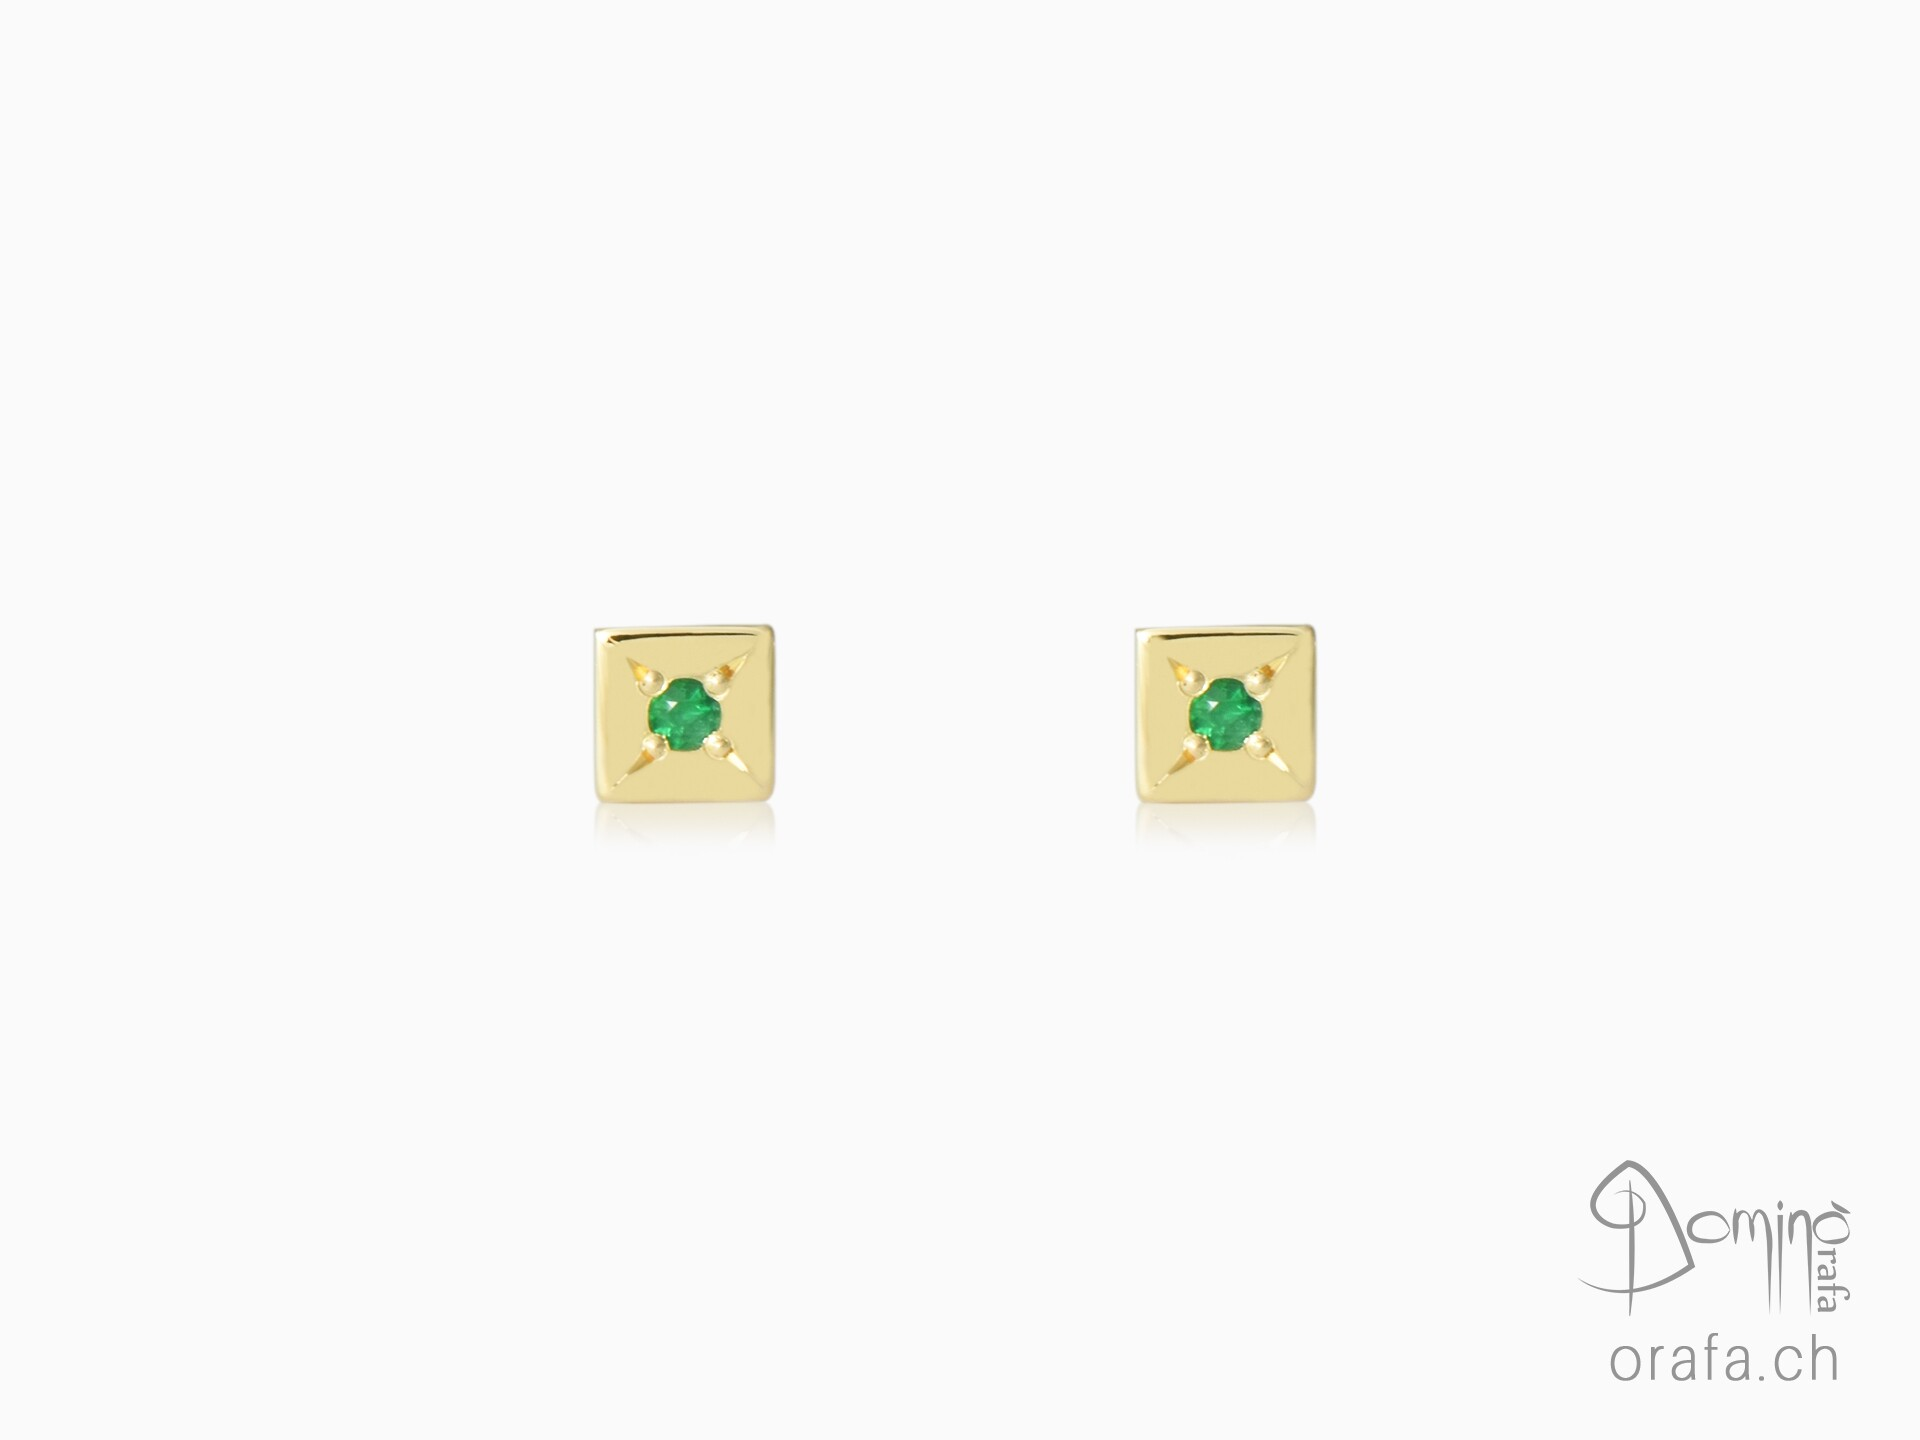 Square earrings with emeralds